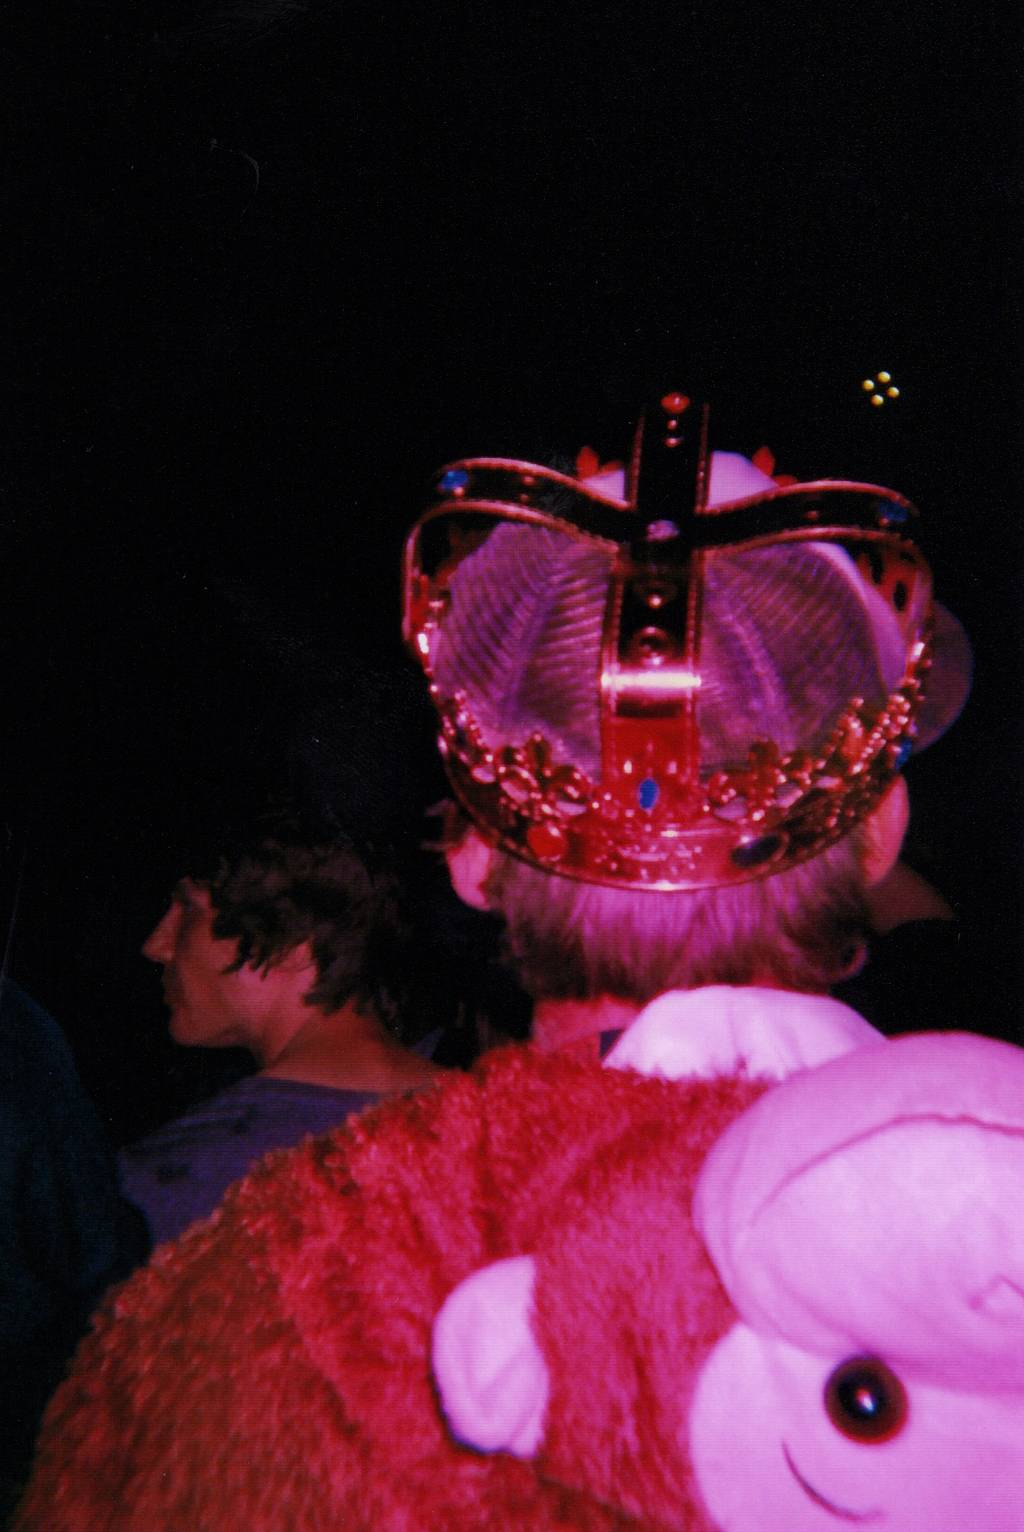 Festivals, Disposable Cameras and Color Filters